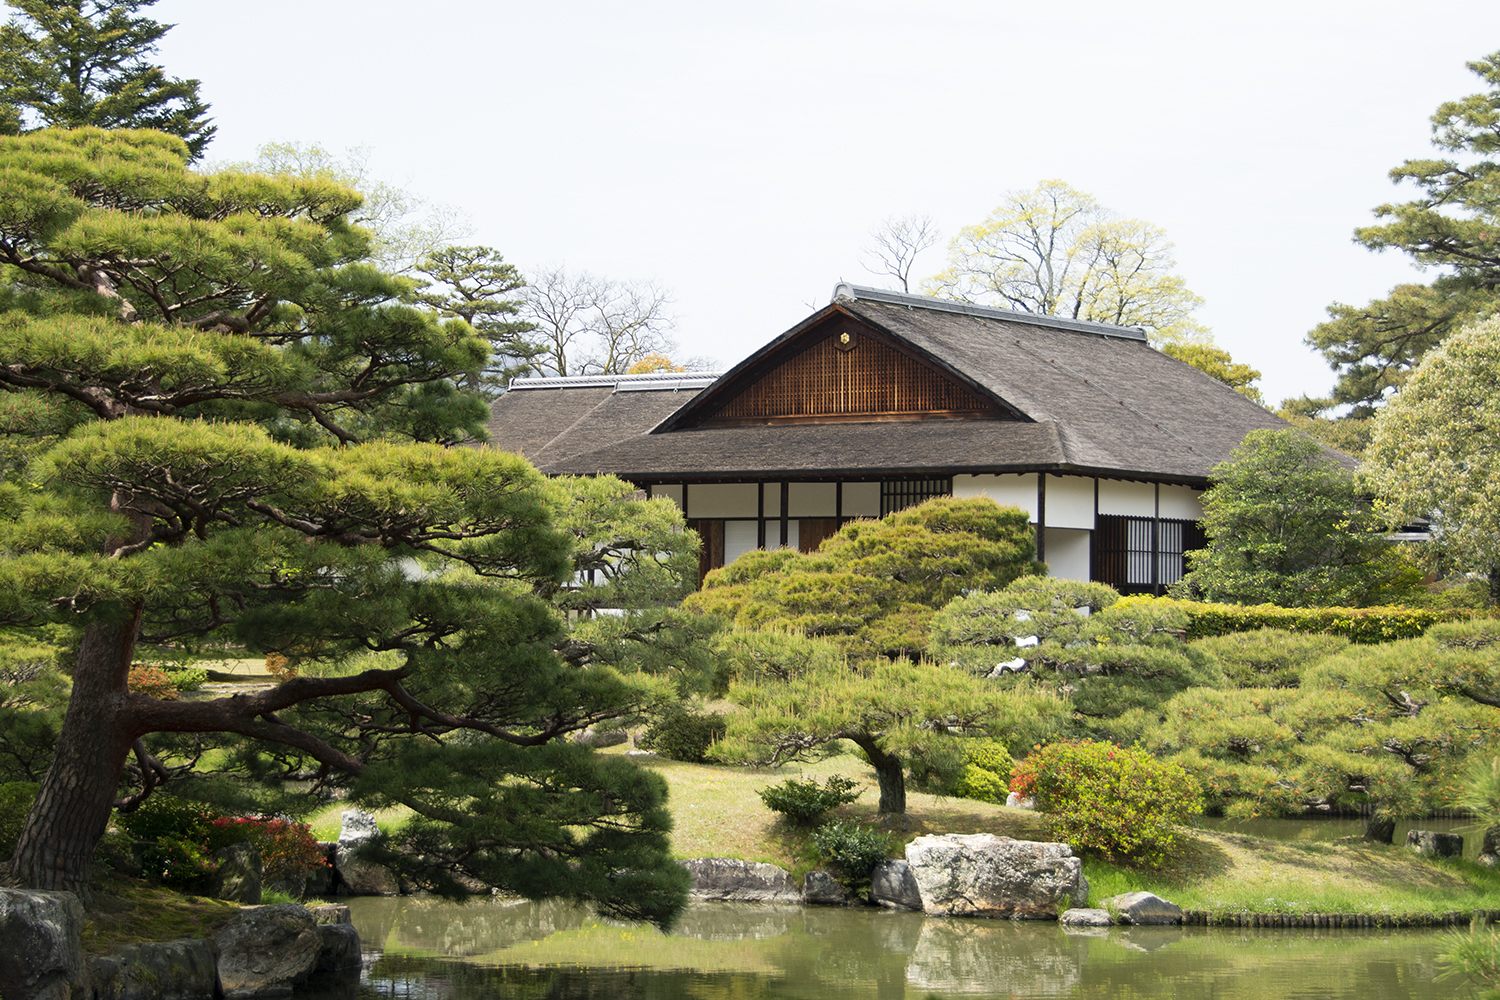 Katsura Villa from across the pond